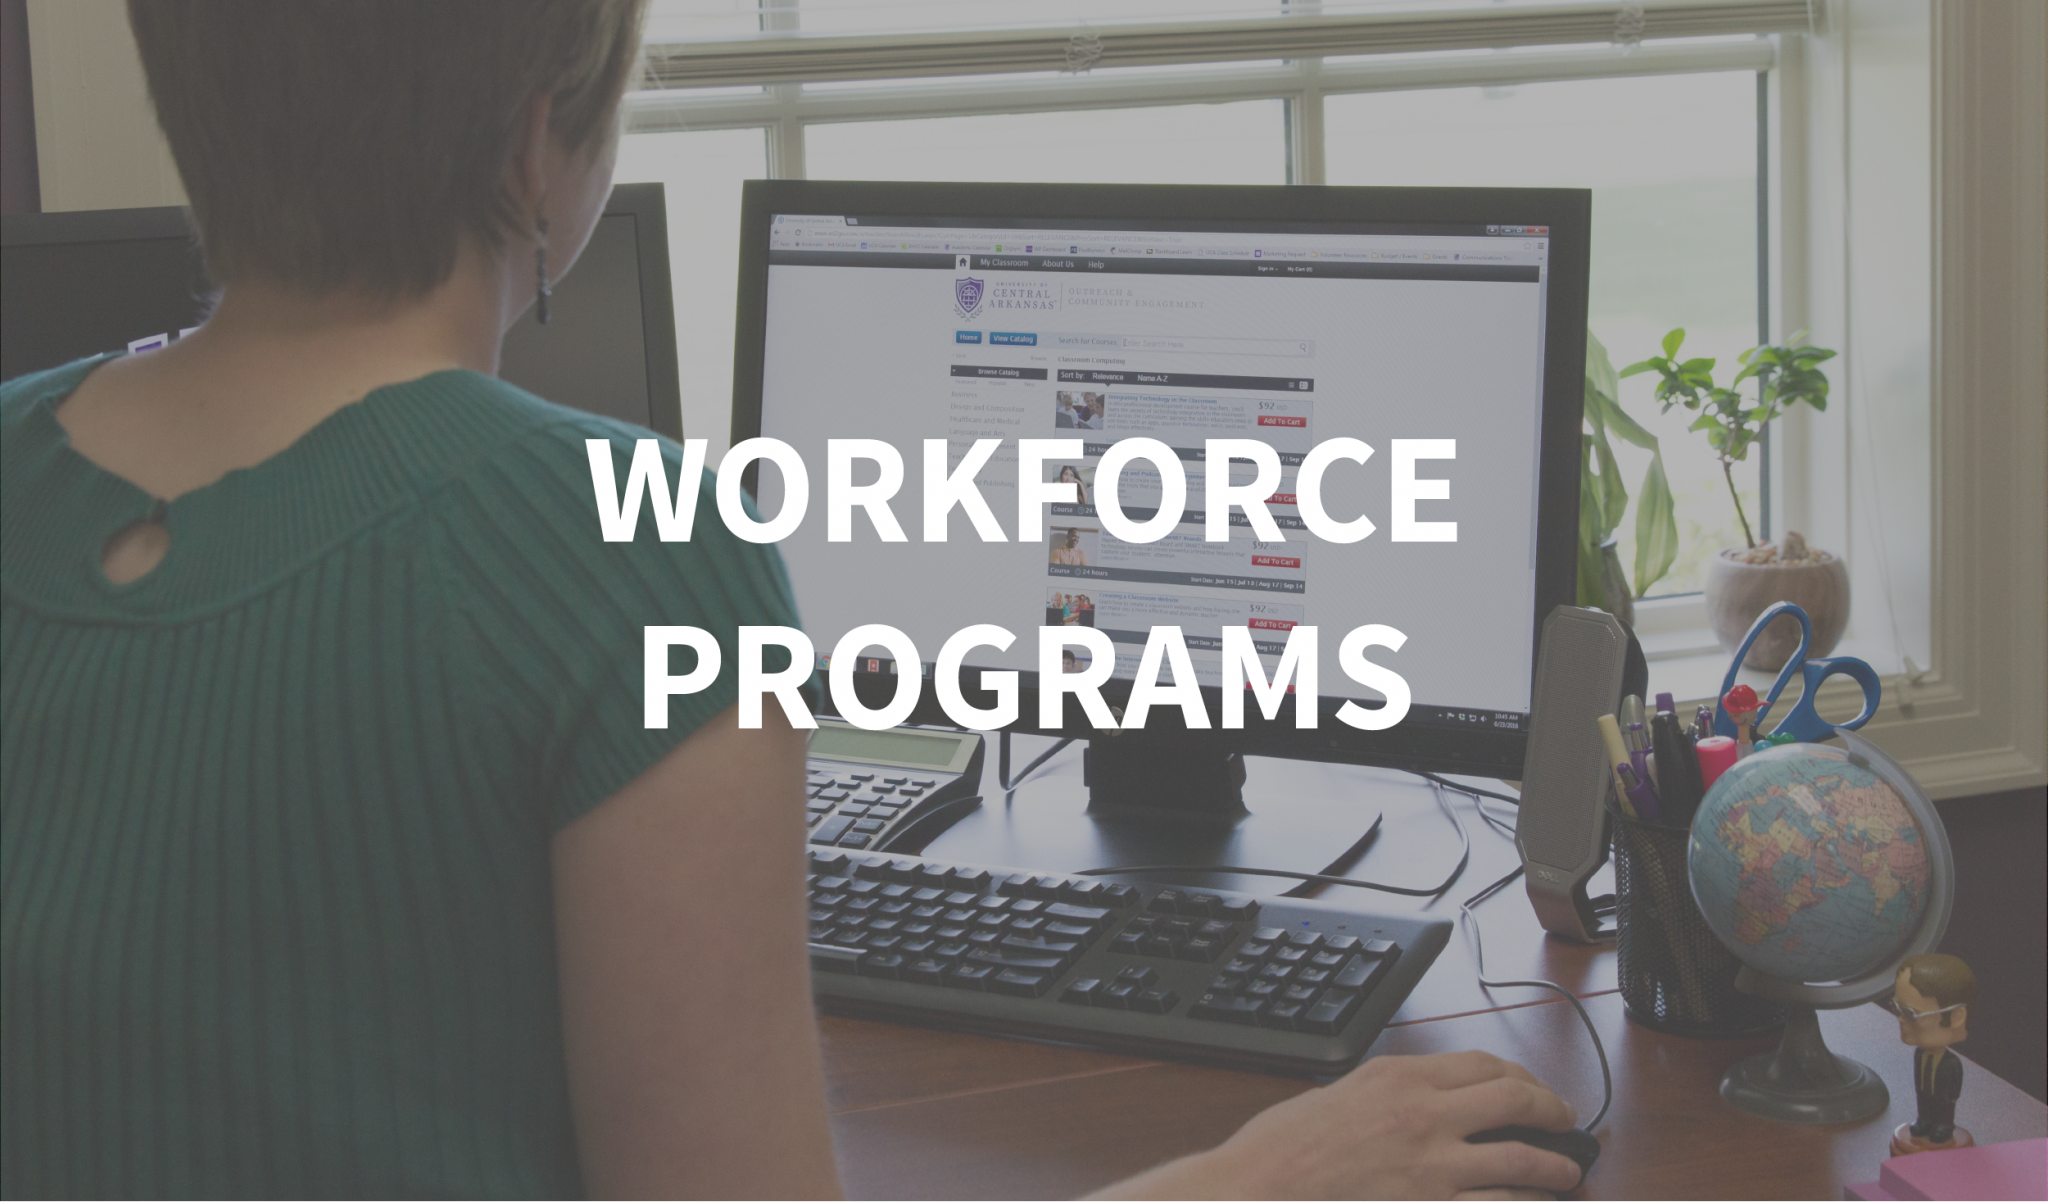 Workforce Programs